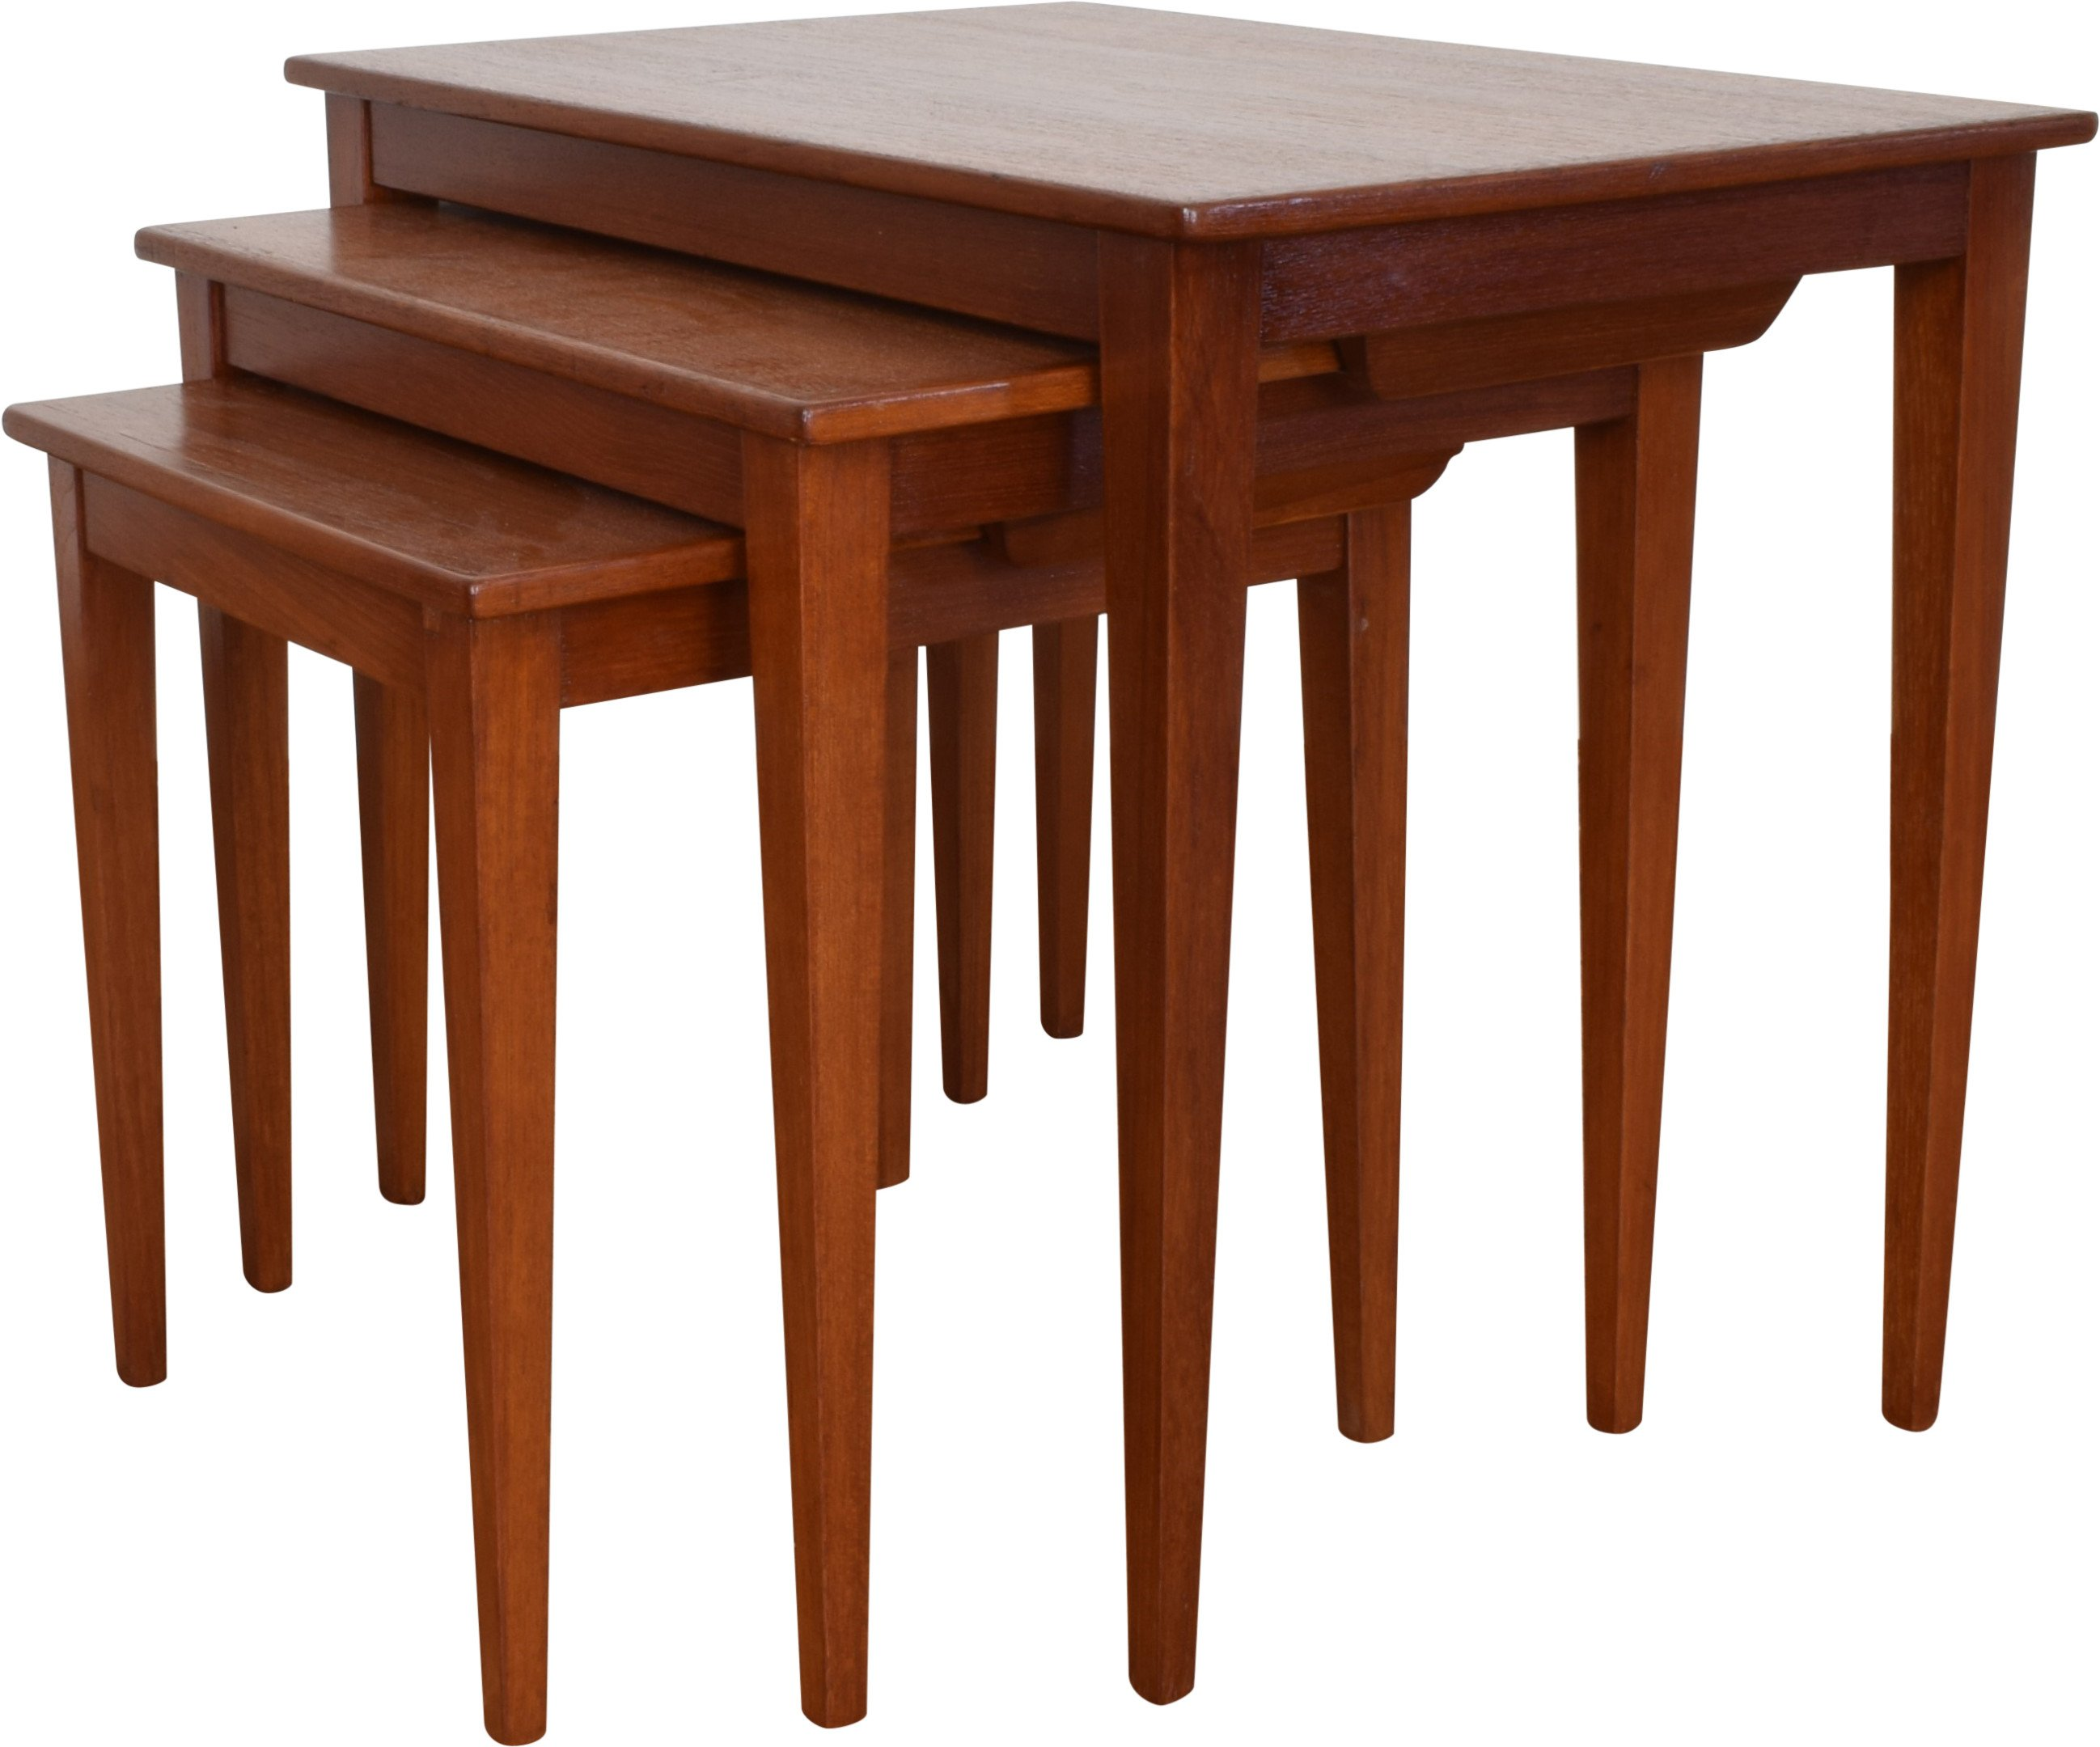 Set of Three Tables, Kvalitet Form Funktion, Denmark, 1960s